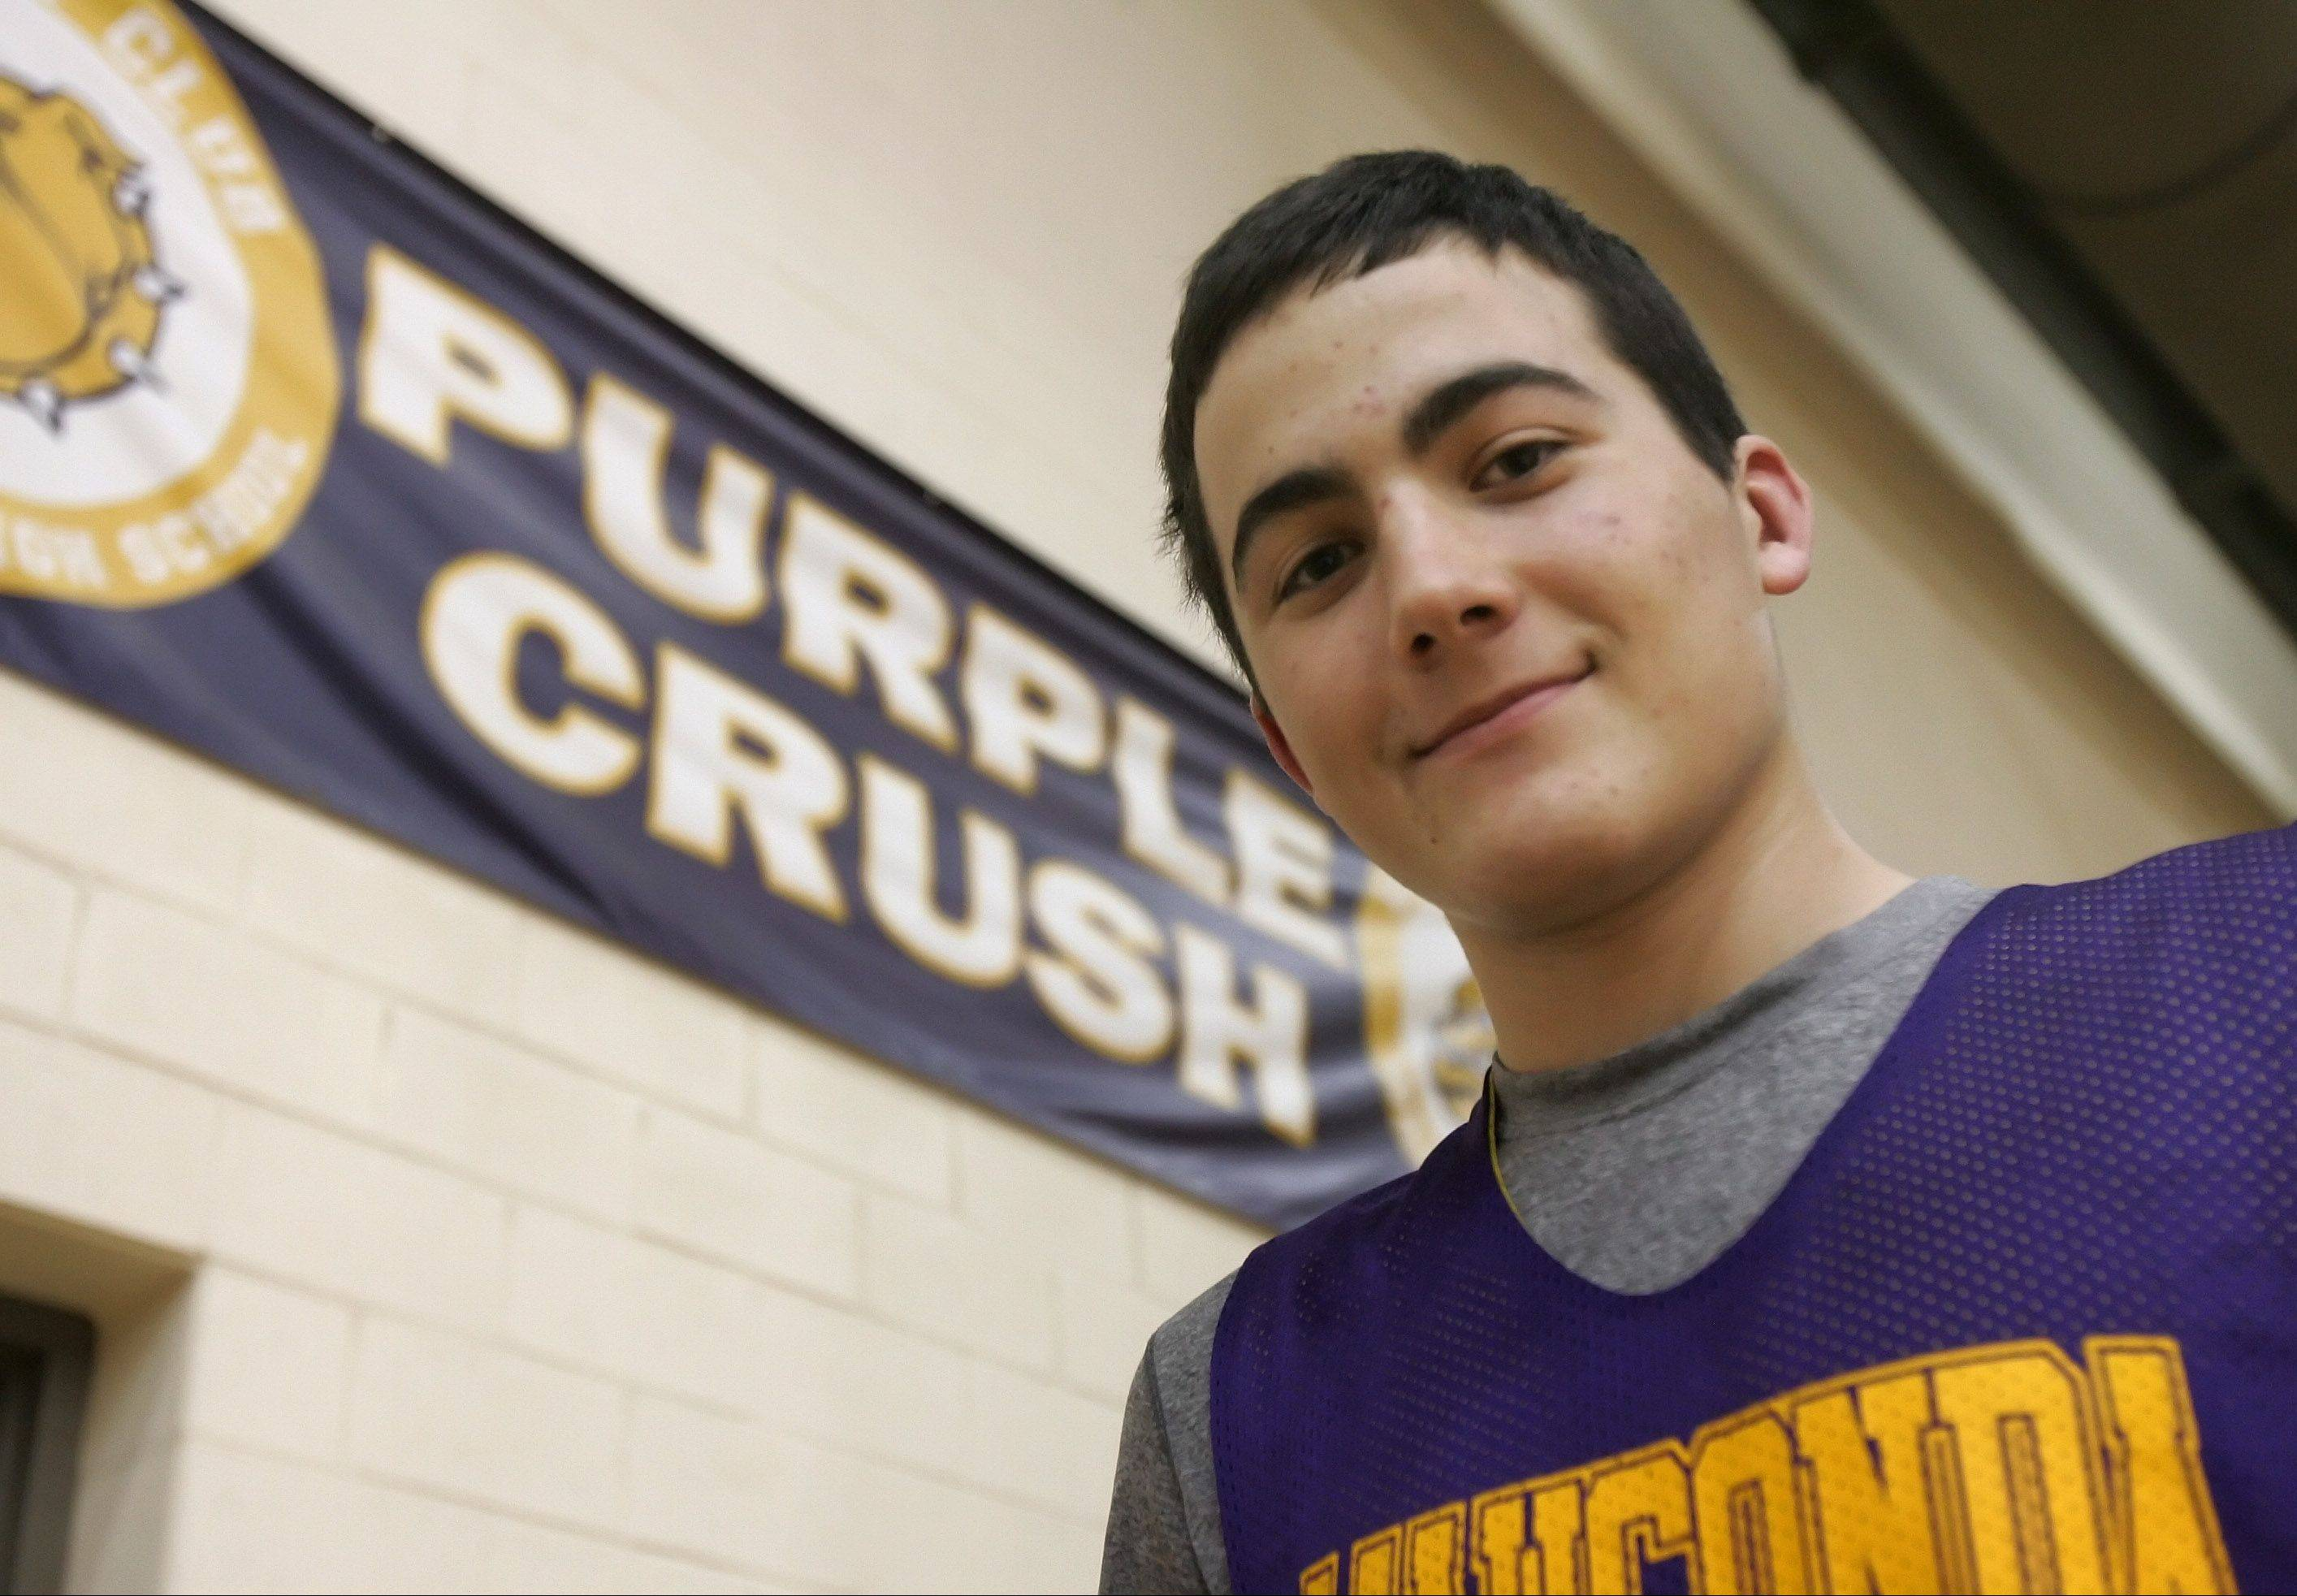 Wauconda�s Austin Swenson will calculate his college decision mainly based on the quality of the school�s engineering program.